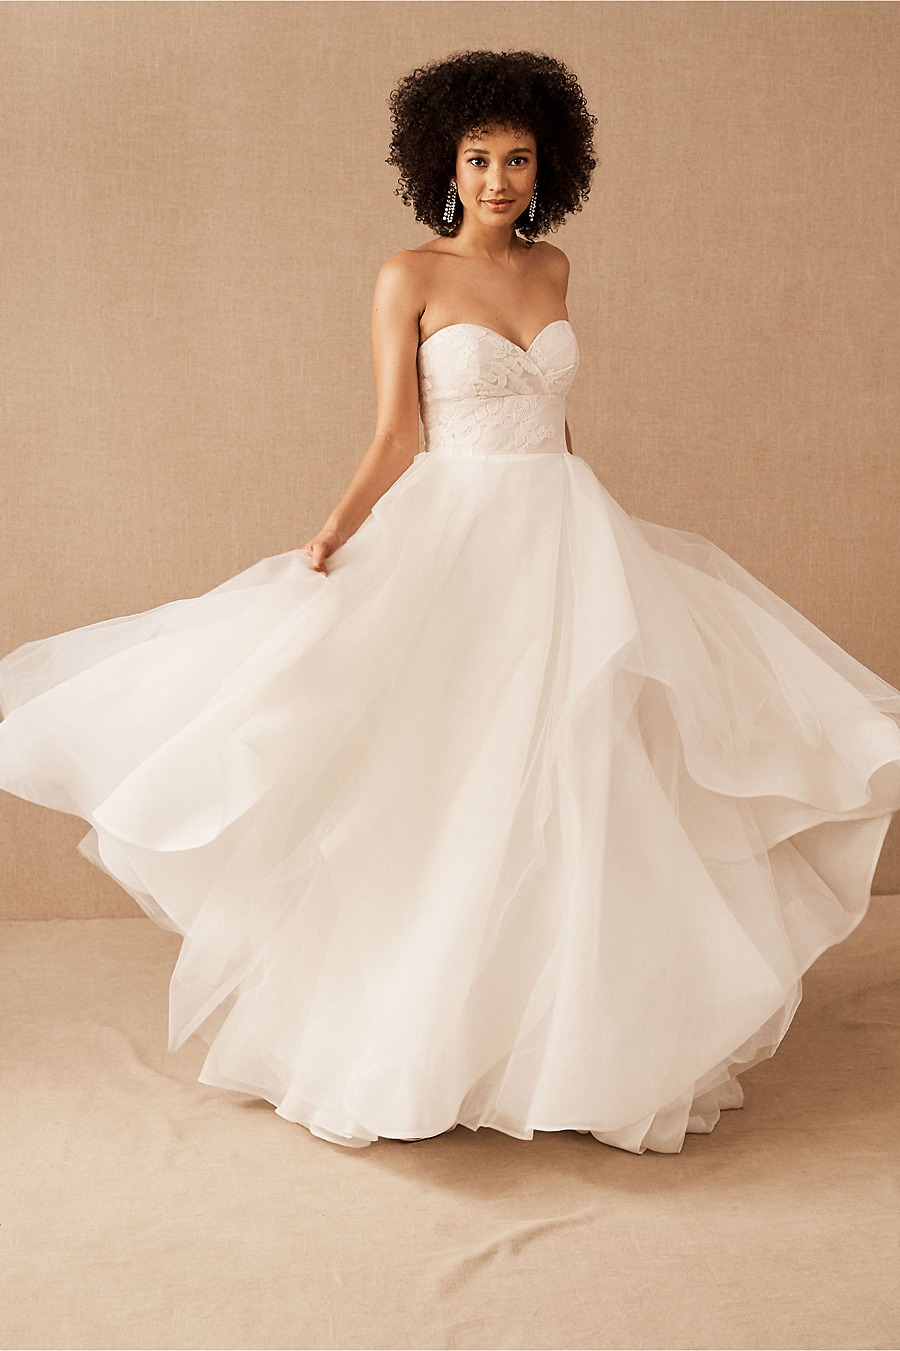 How to Buy a Cheap and Legit Wedding Dress Online Without ...